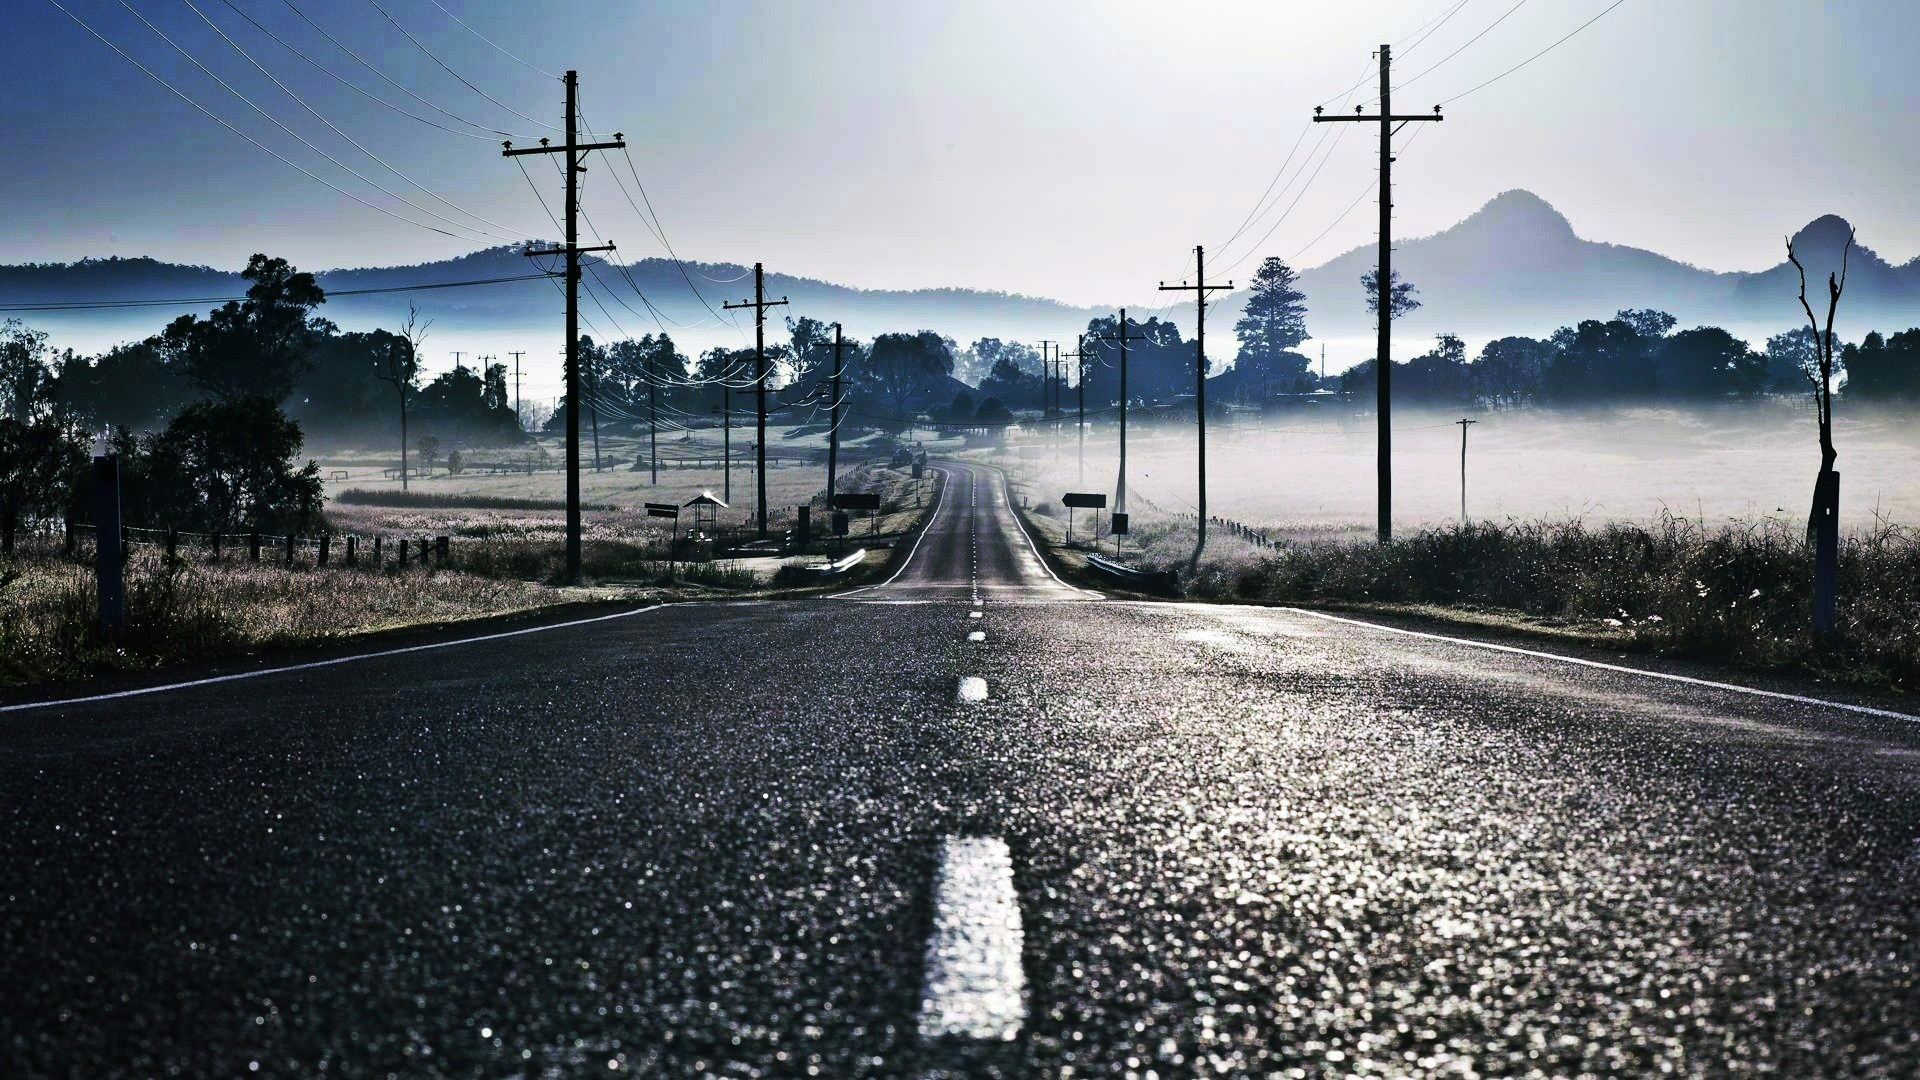 highway_road_stretch_road_markings_naturistic_77539_1920x1080